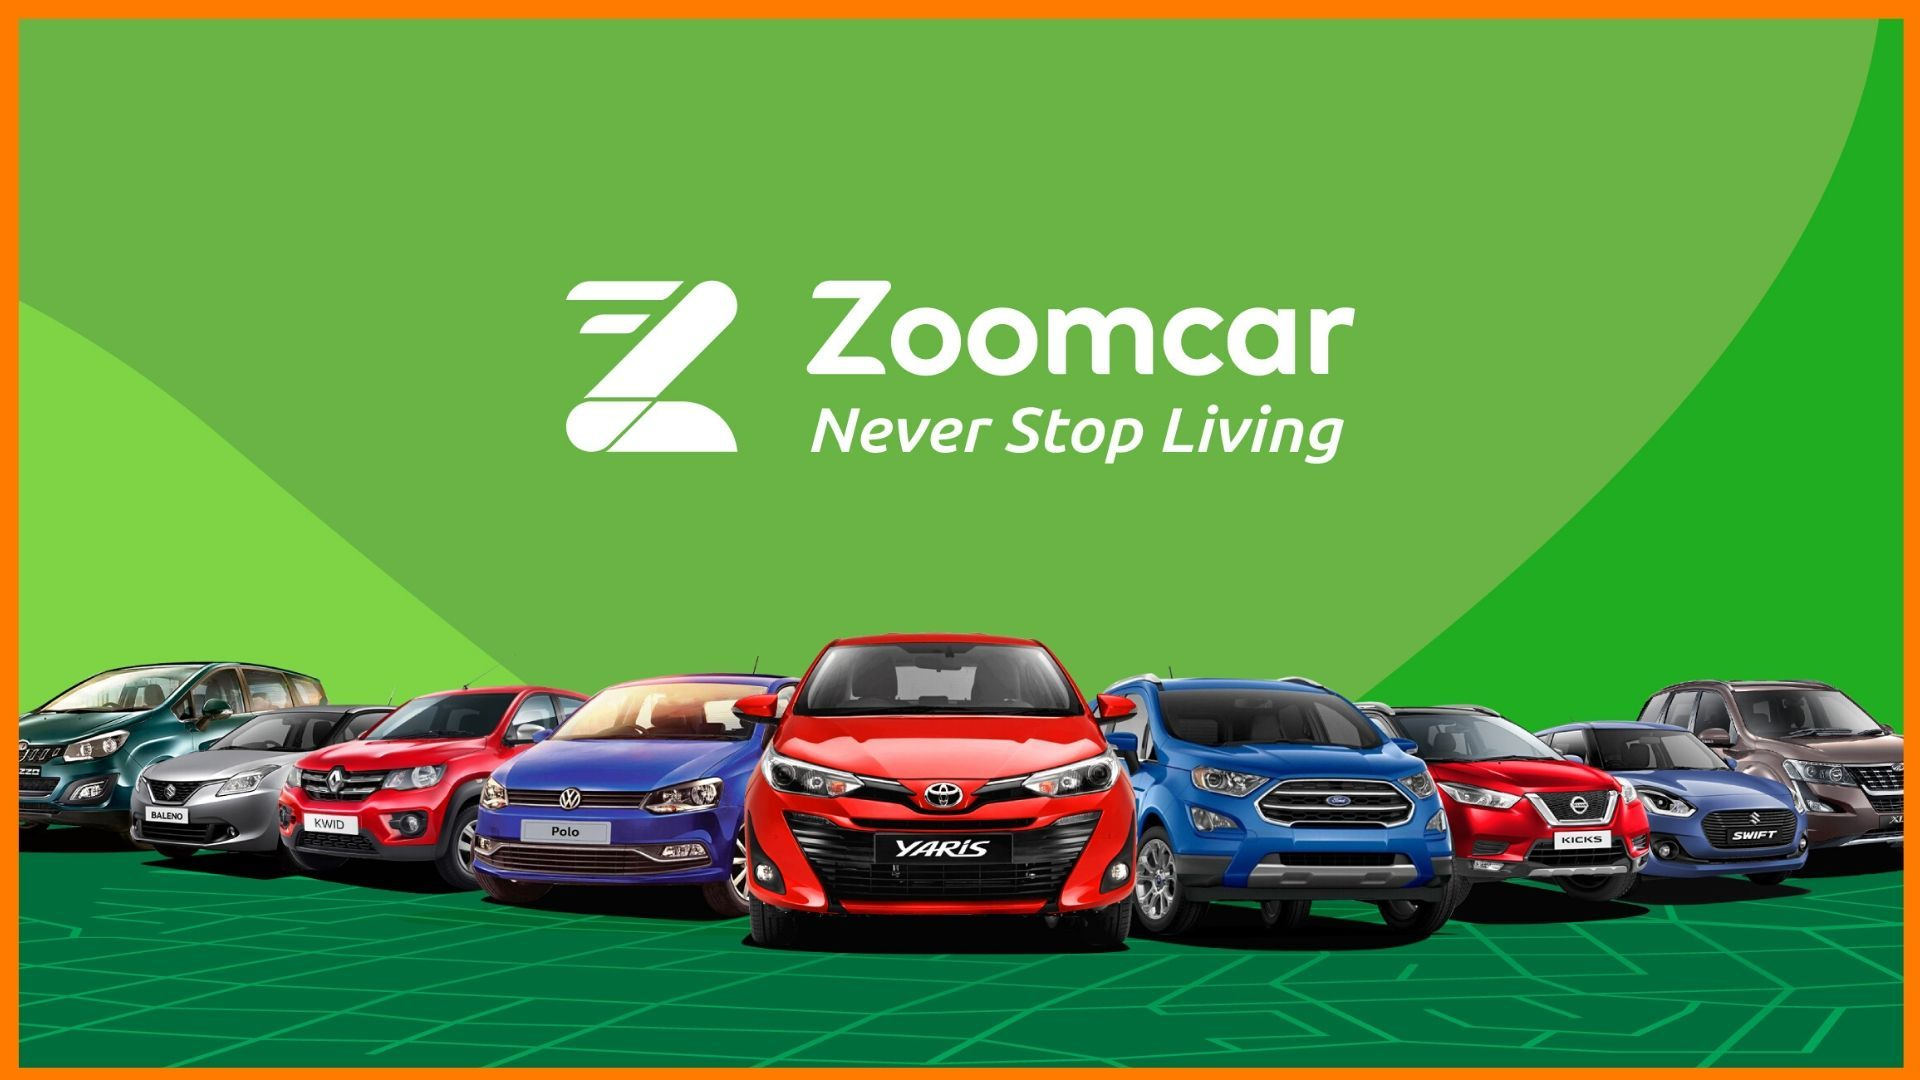 Zoomcar - Never Stop Living